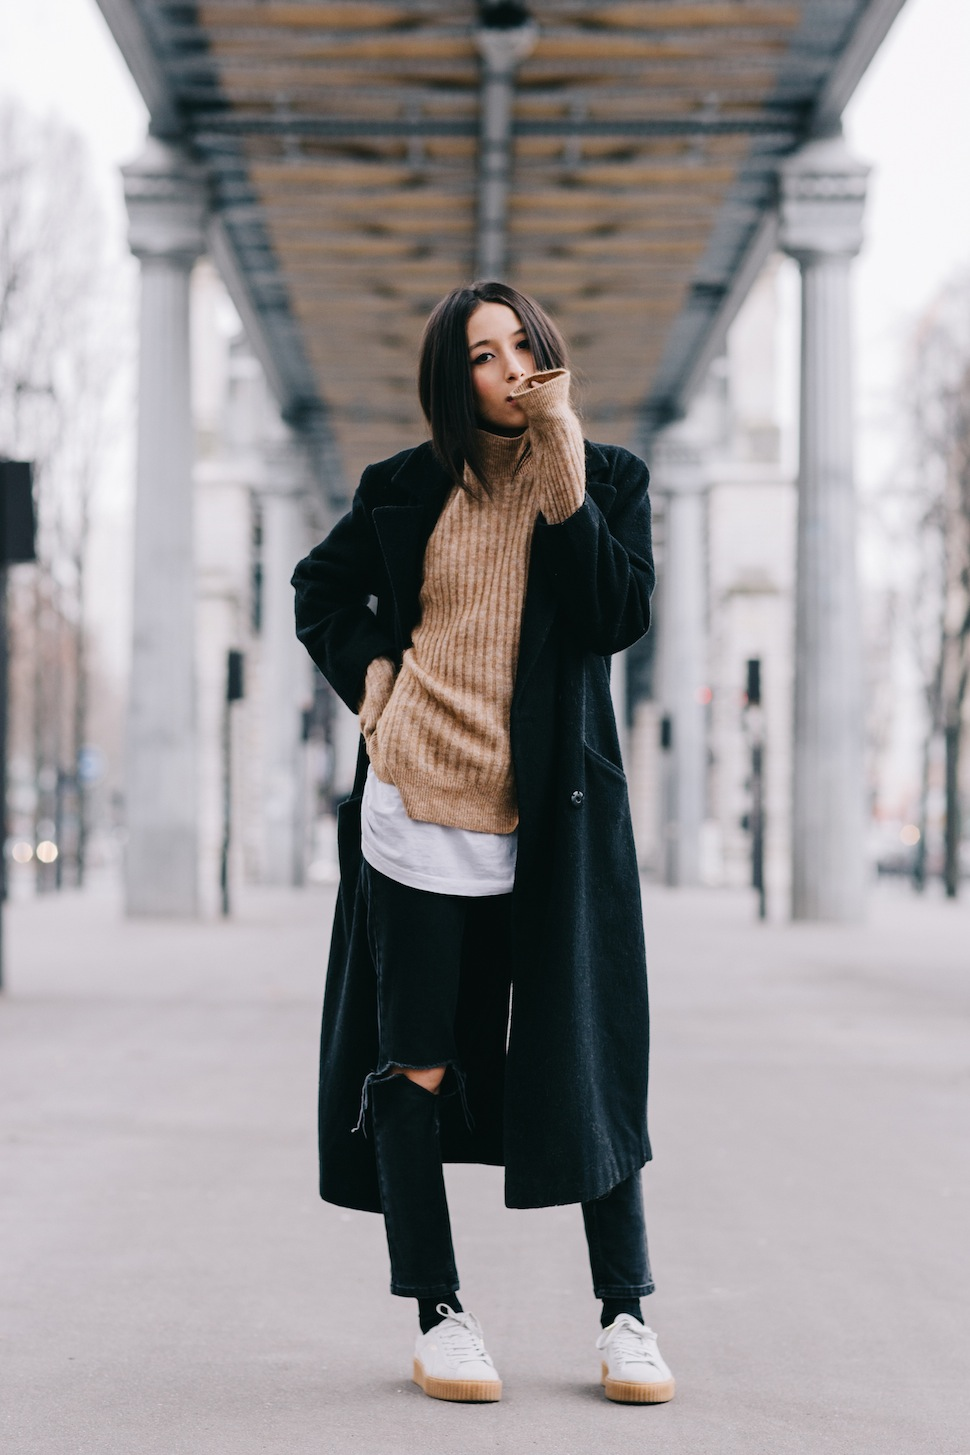 Wear the extra long sleeve style like Alexandra Guerain by wearing a long sleeved cable knit sweater underneath a maxi coat. This outfit is sleek and sophisticated, but the long sleeves really make it cute too! Outfit: Asos.